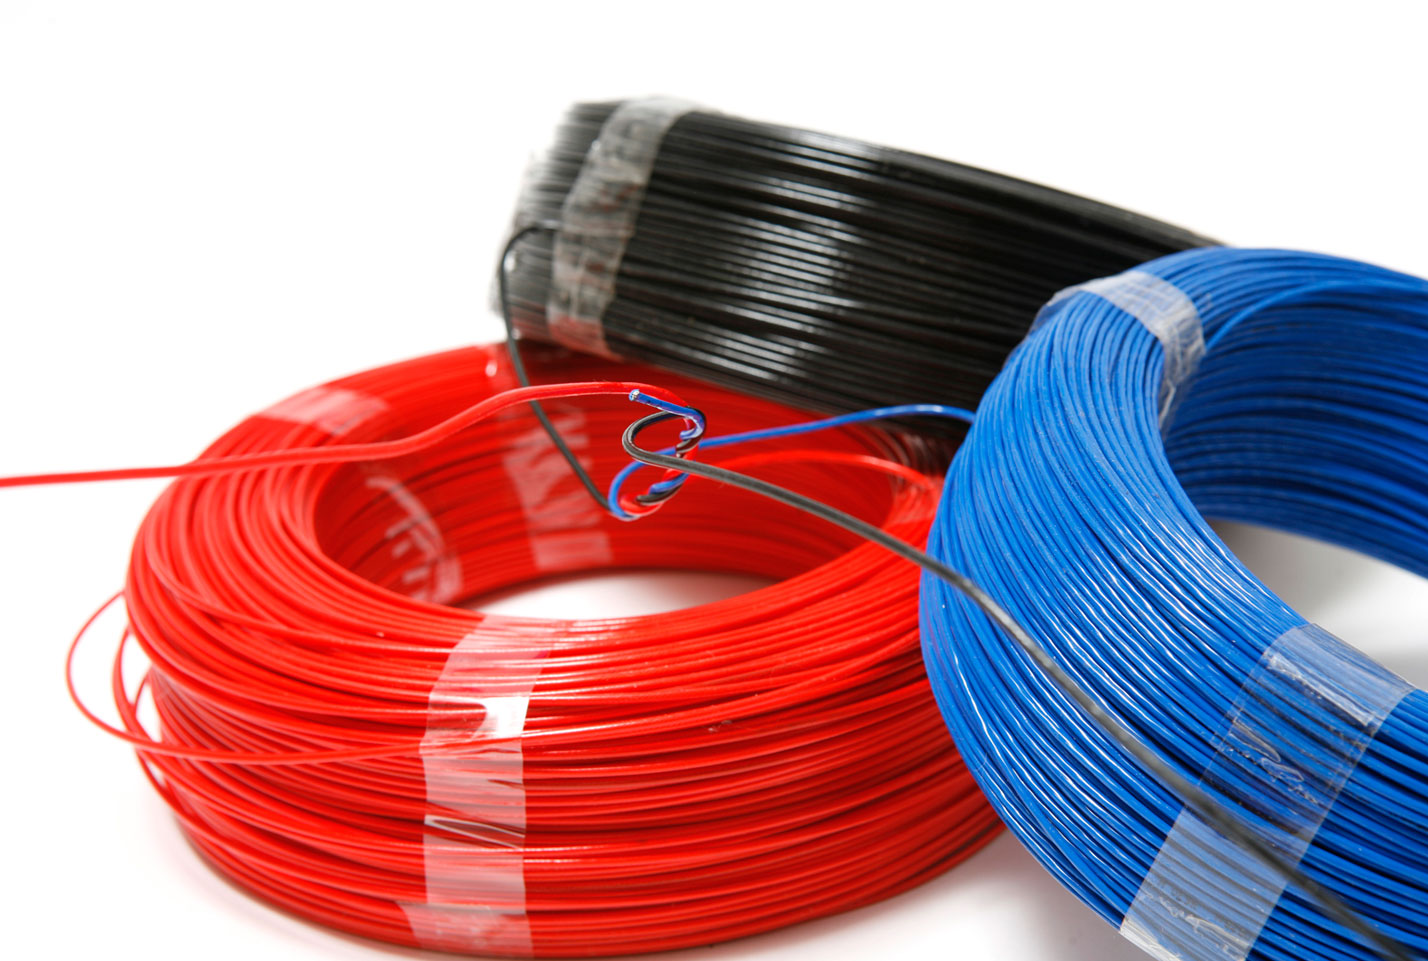 cable_01